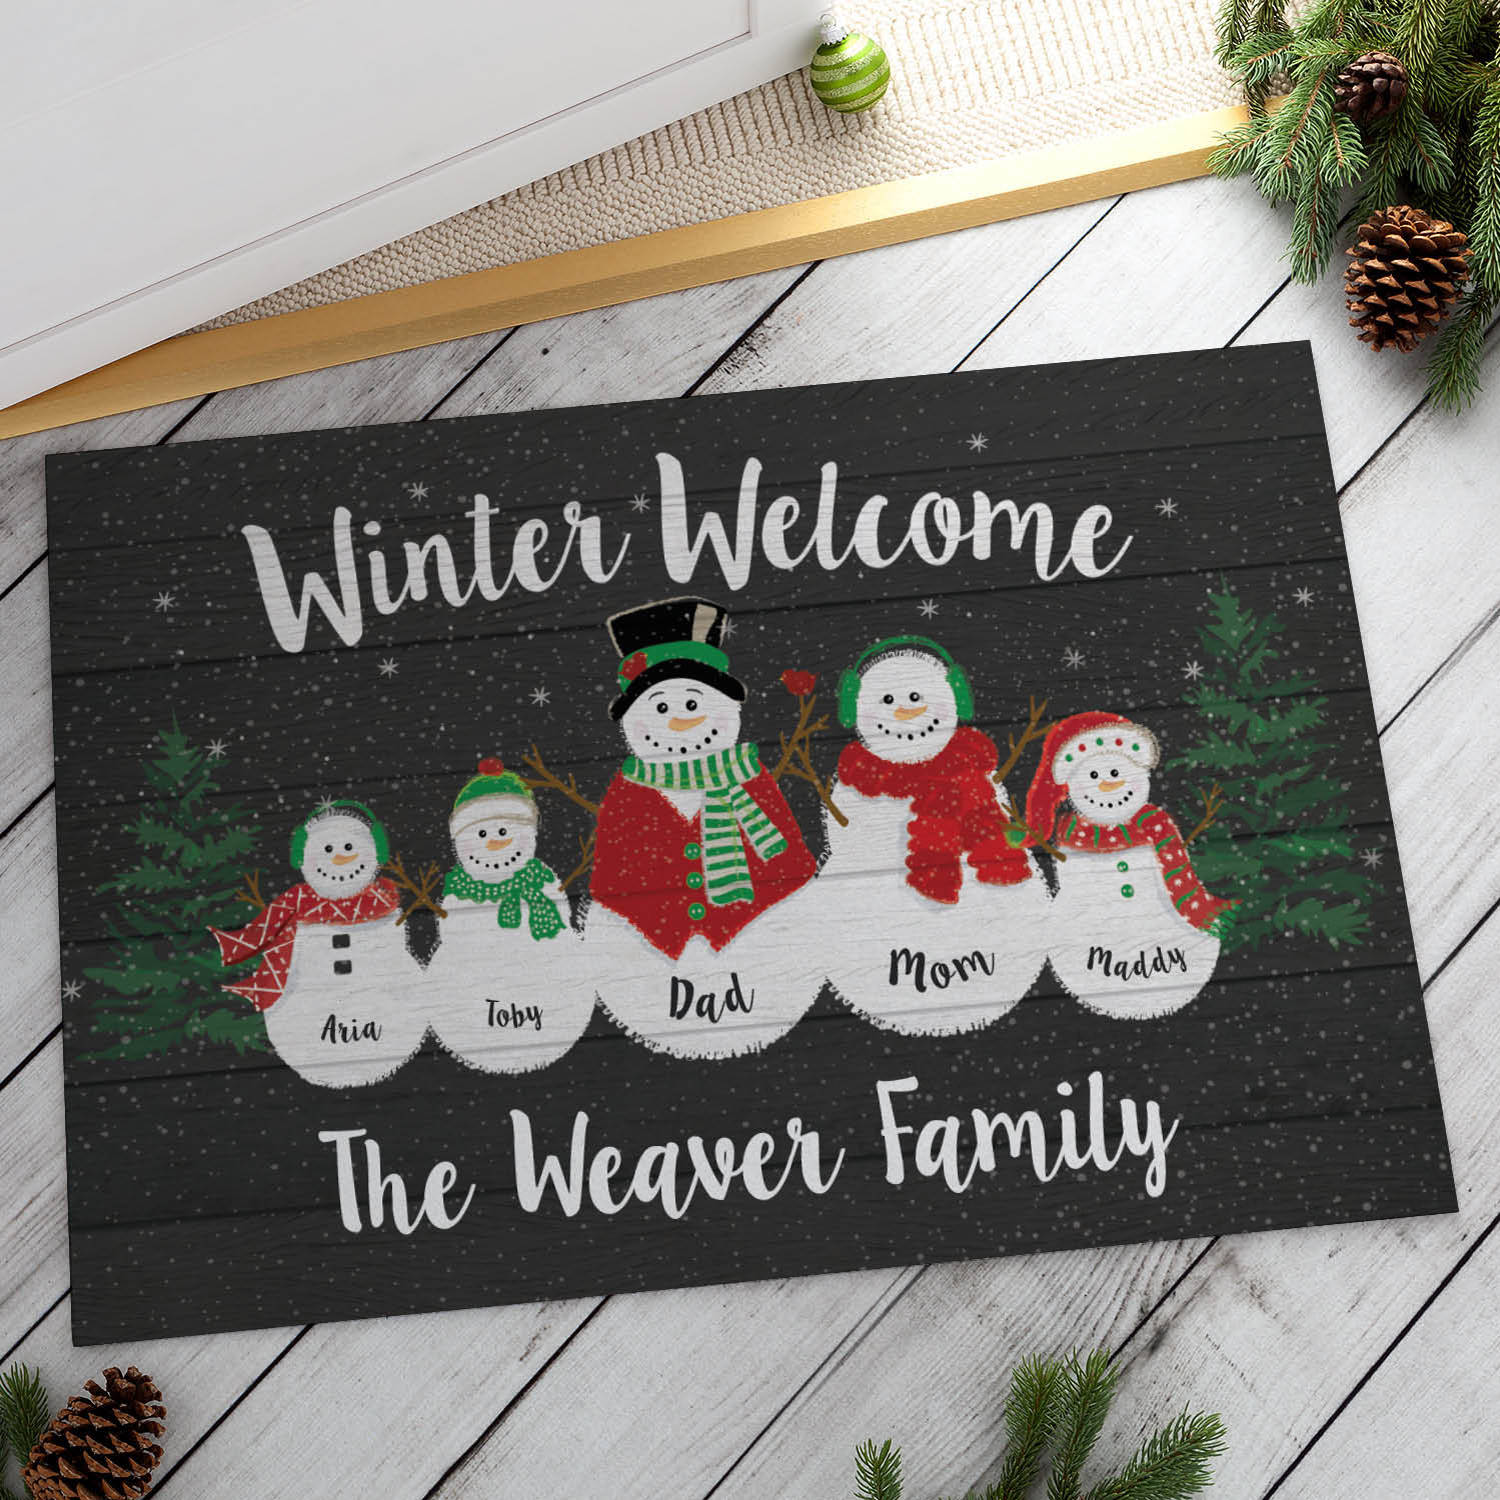 Personalized Doormat - Winter Welcome Family